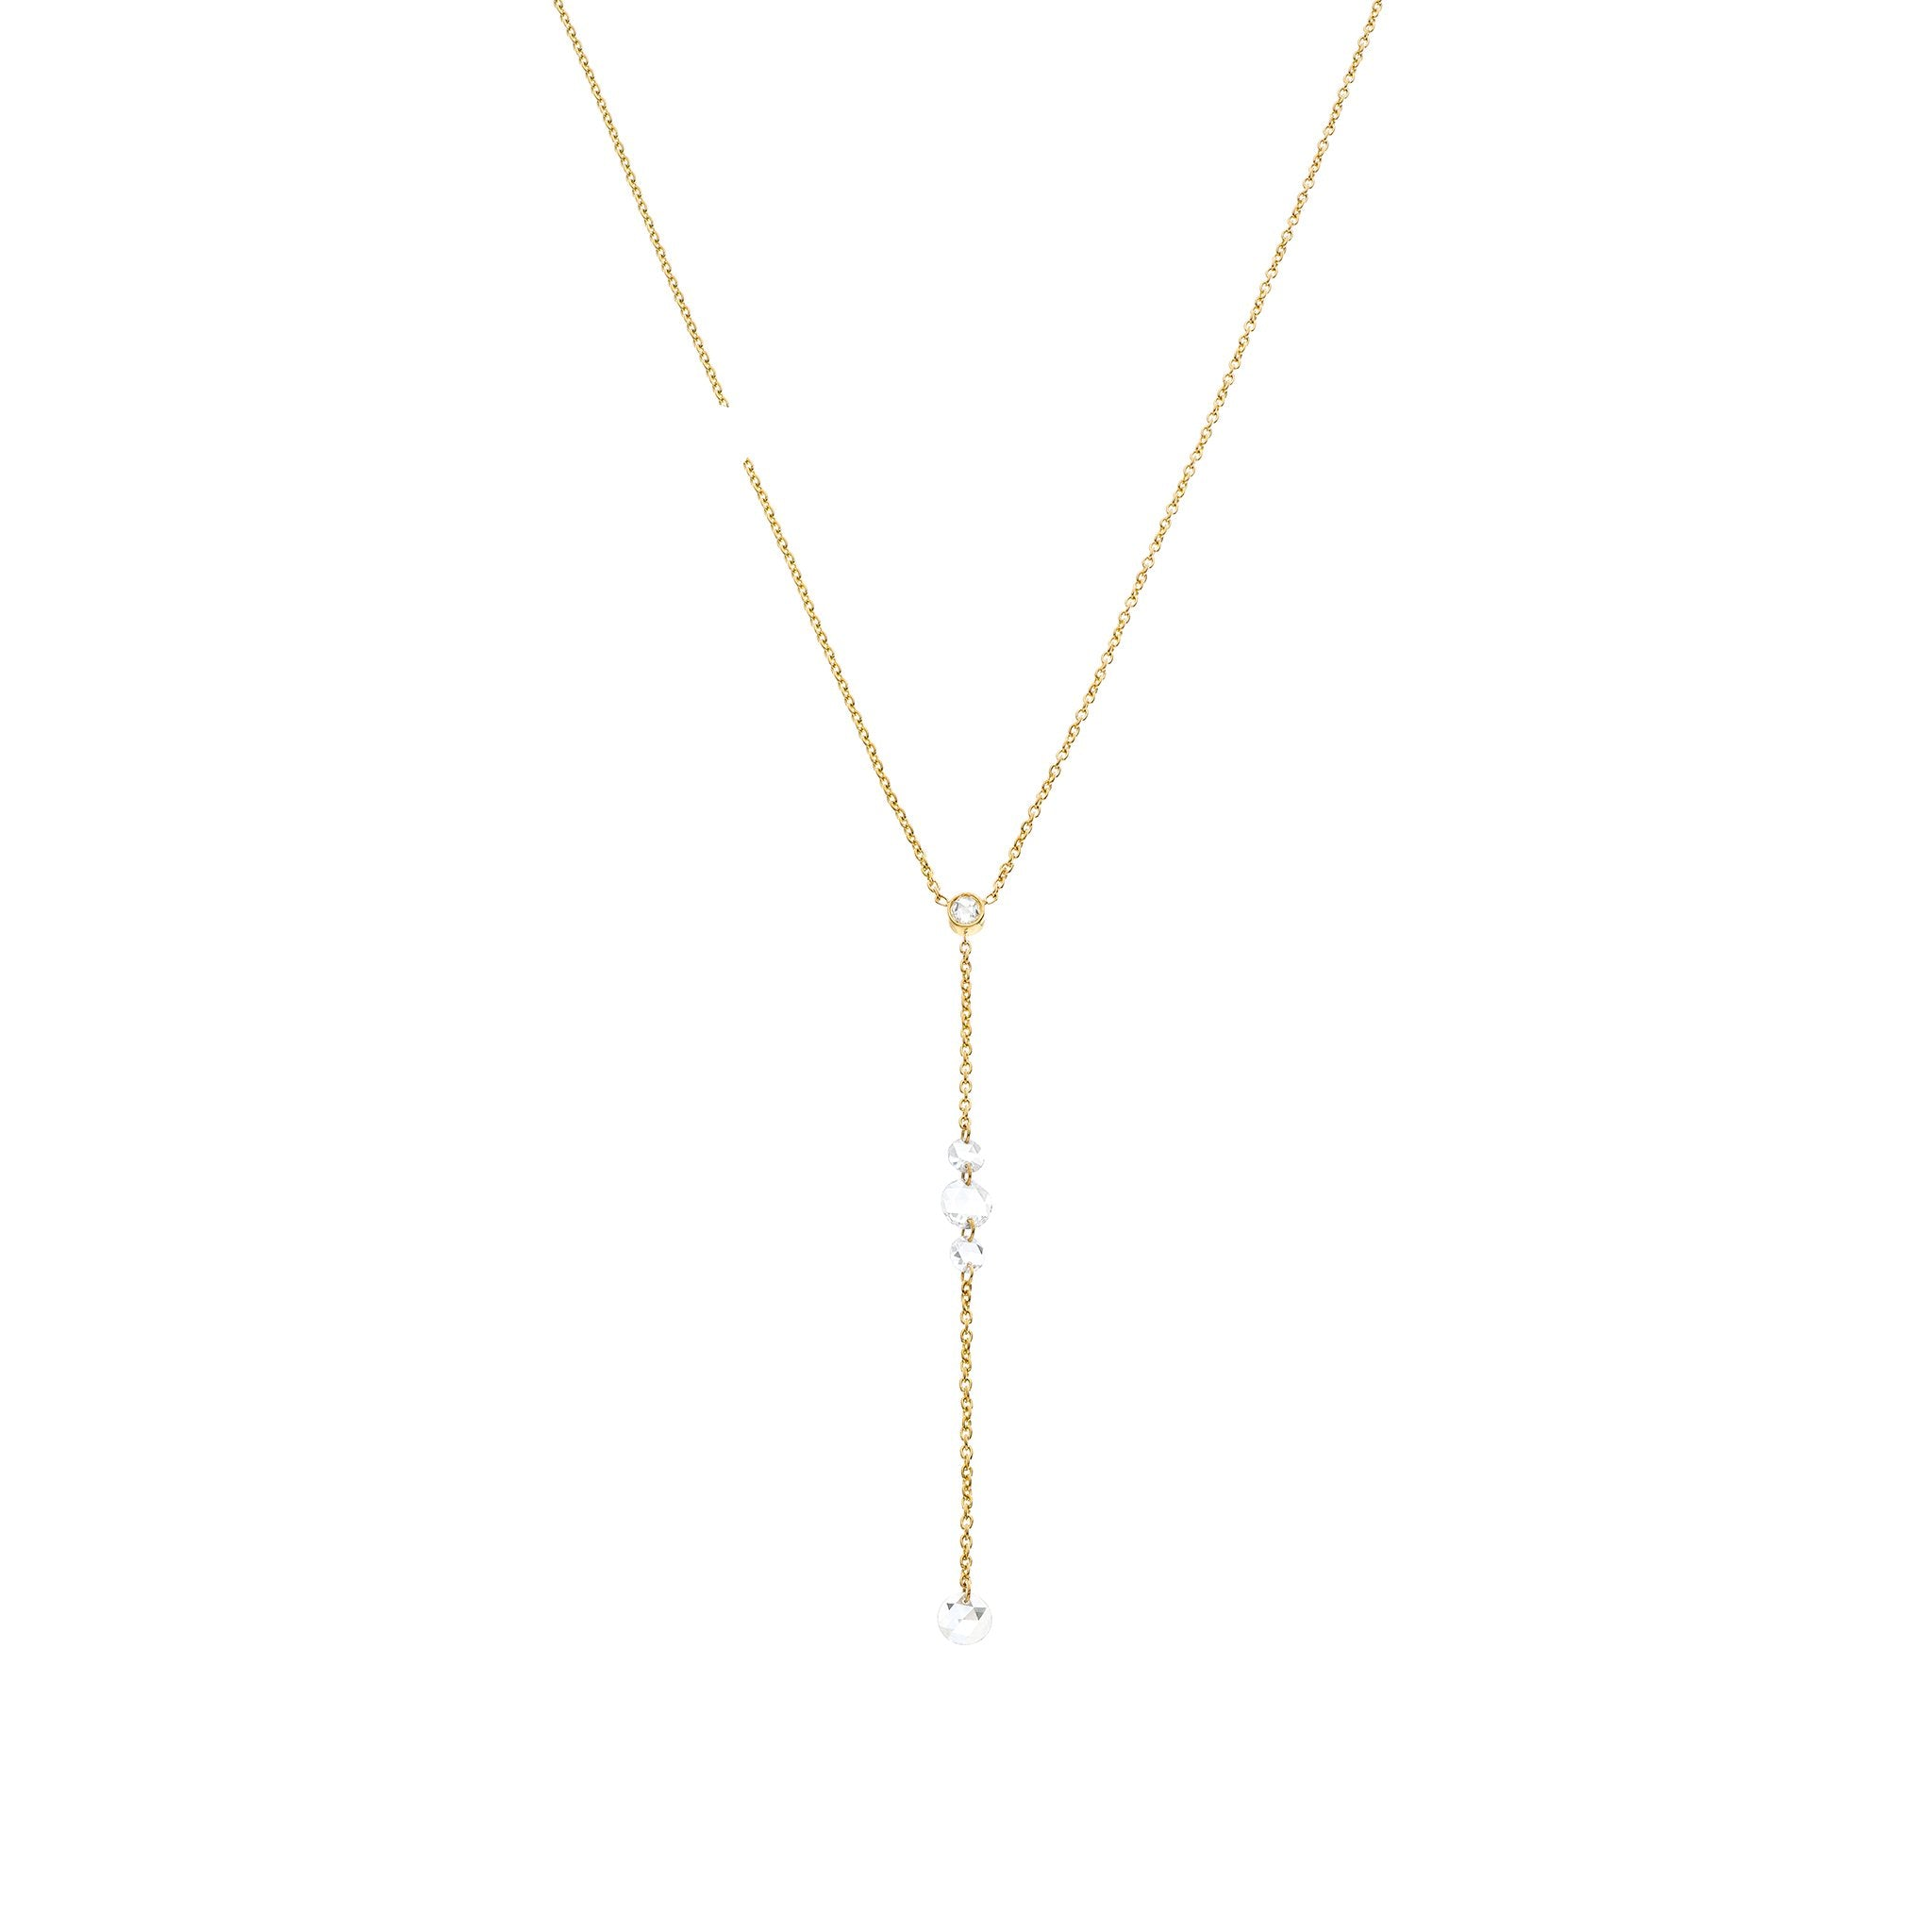 The Cien Linear Necklace